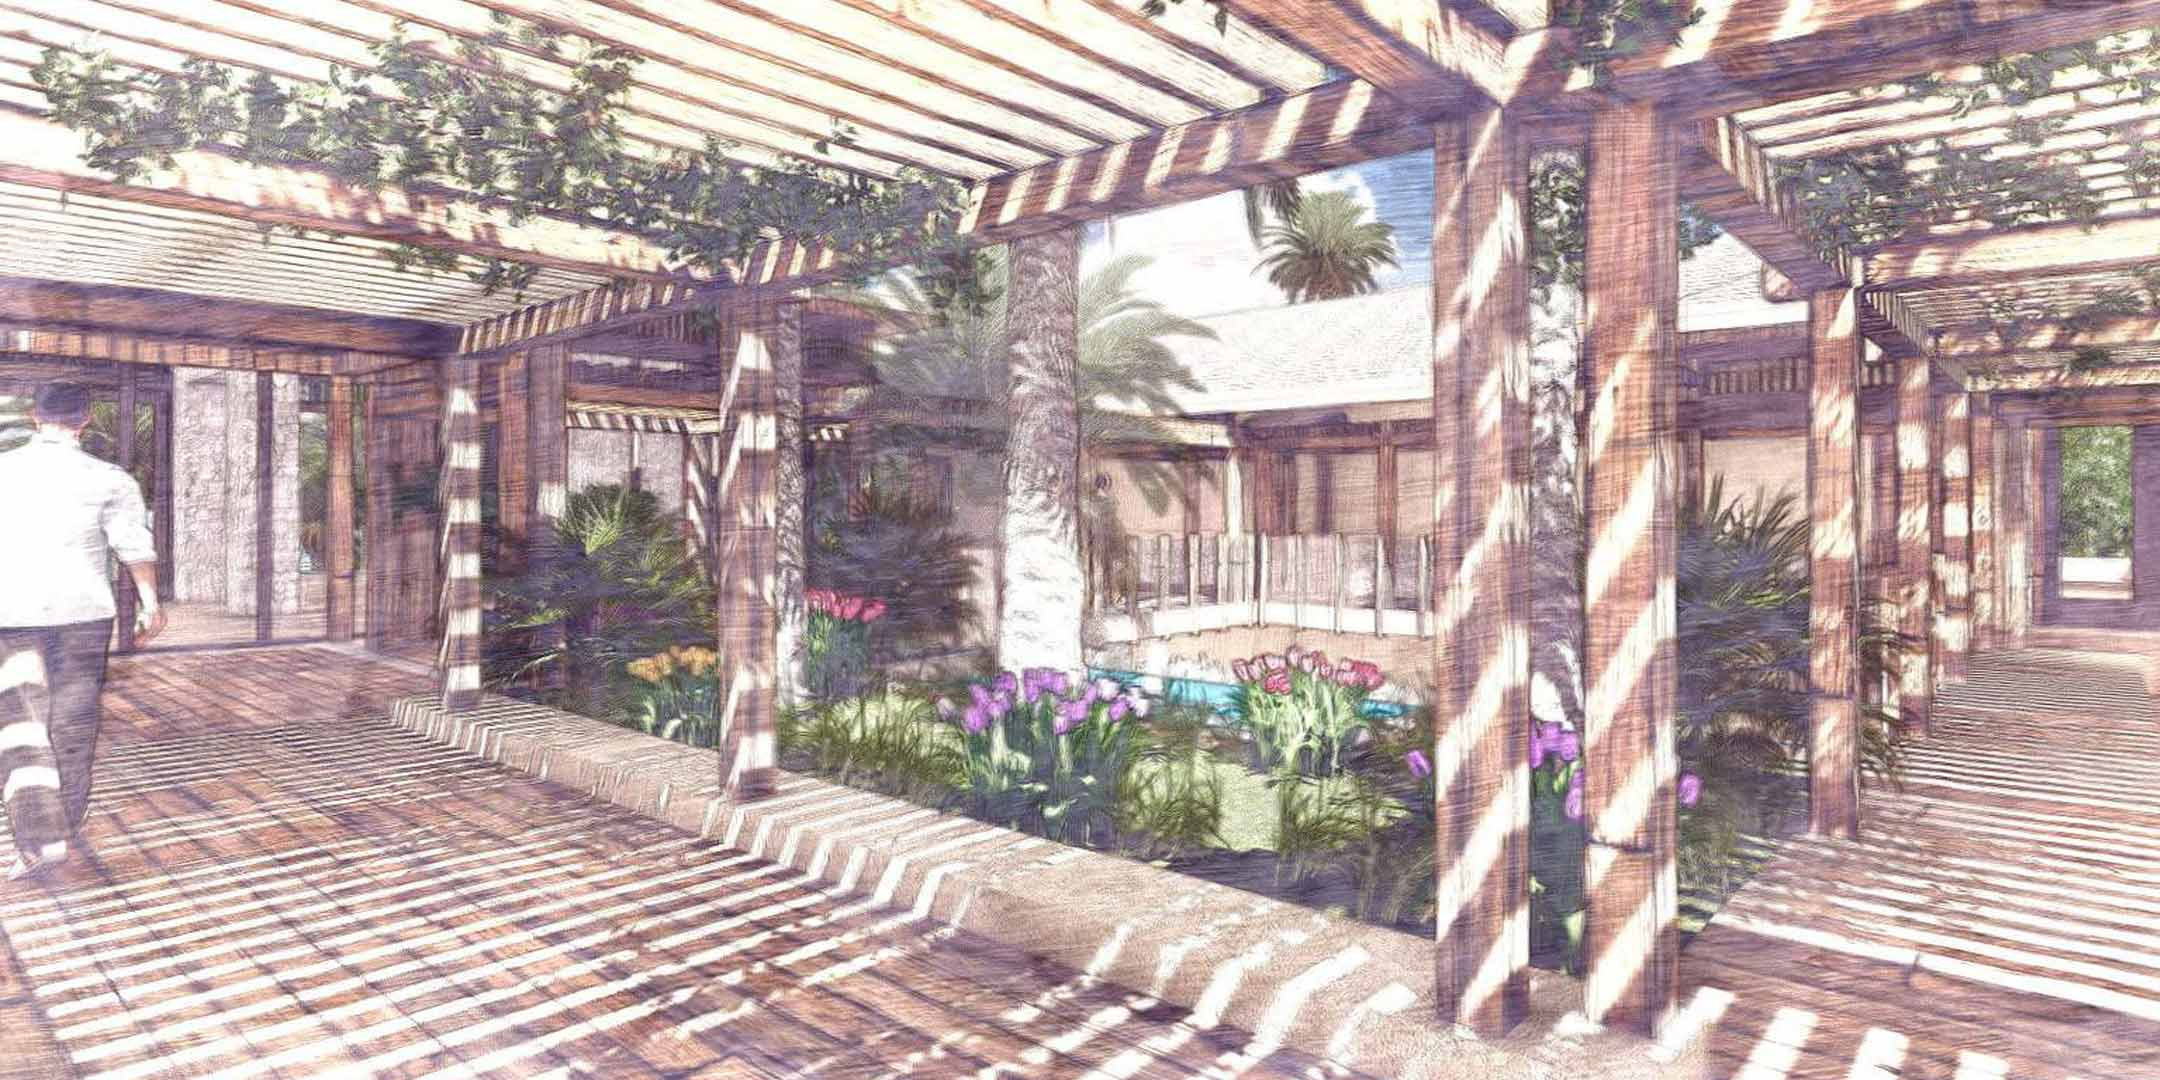 GL-GS-Courtyard-Watercolor-Image-Rectangle-2160x1080